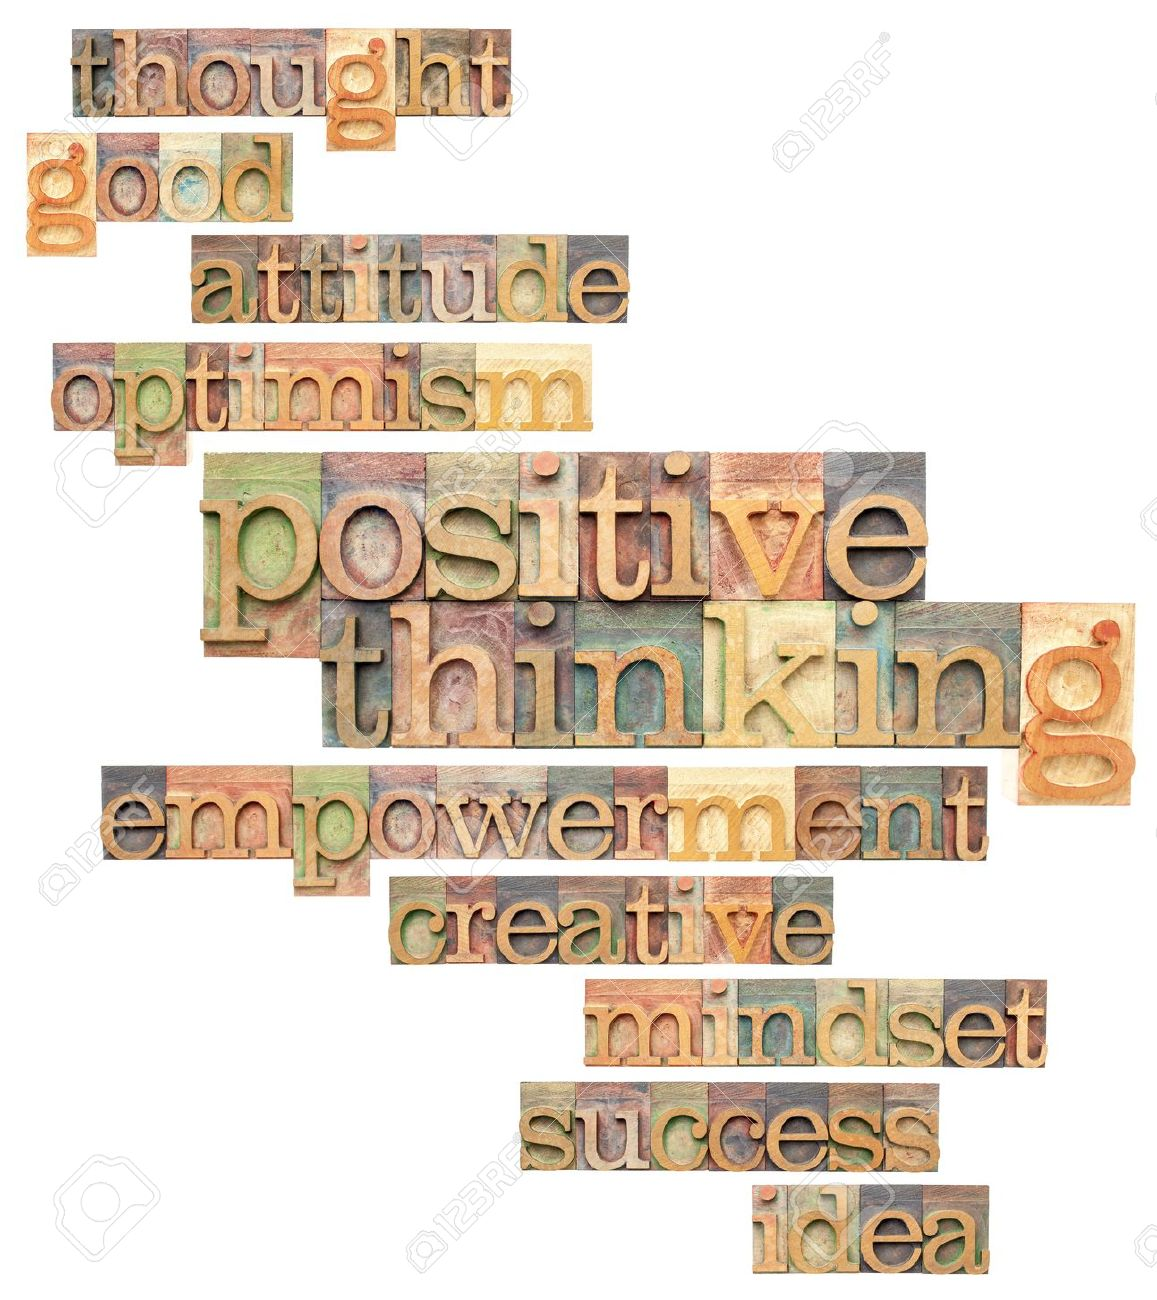 positive thinking and related words - a collage of isolated text in vintage letterpress printing blocks Stock Photo - 17806574